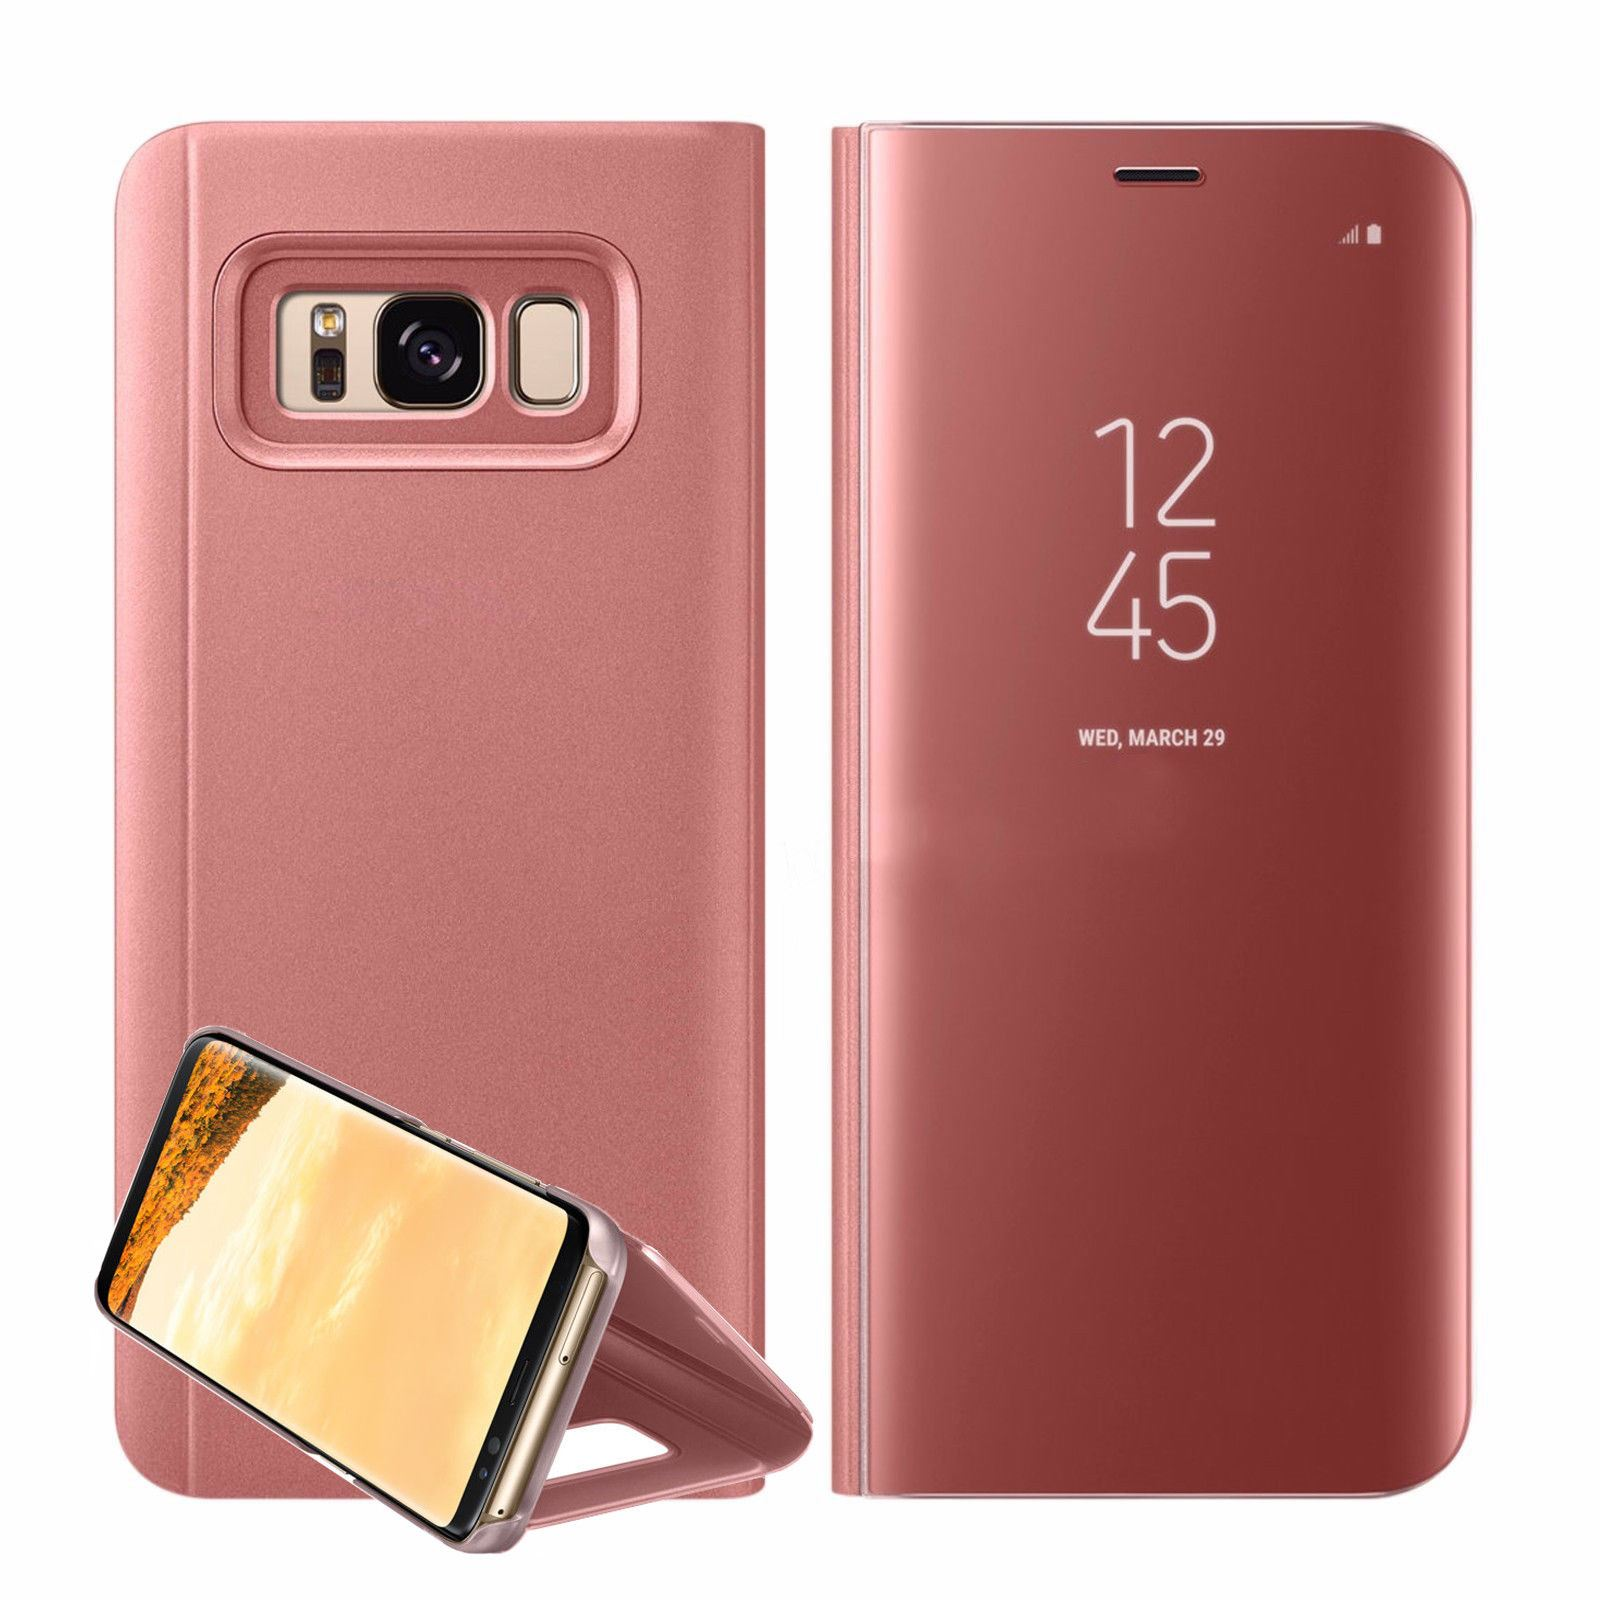 New-Samsung-Galaxy-S8-S9-S10-Smart-View-Mirror-Leather-Flip-Stand-Case-Cover miniatuur 24